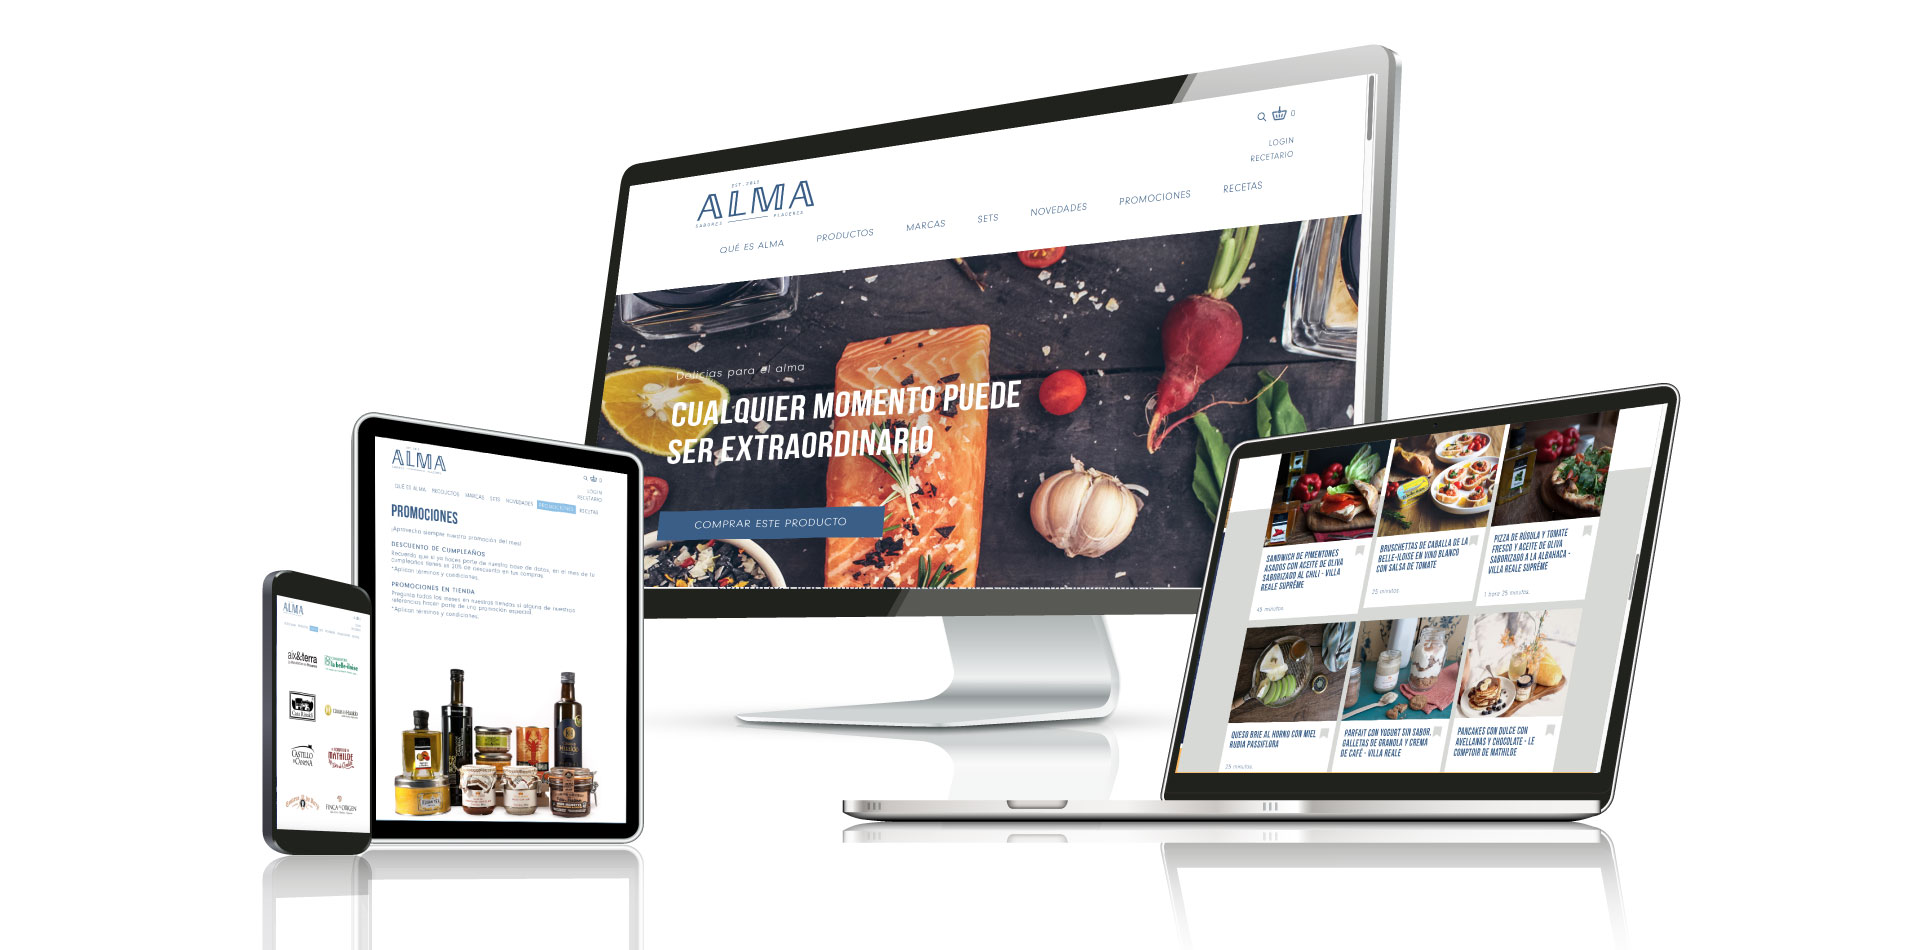 ALMA - E-commerce